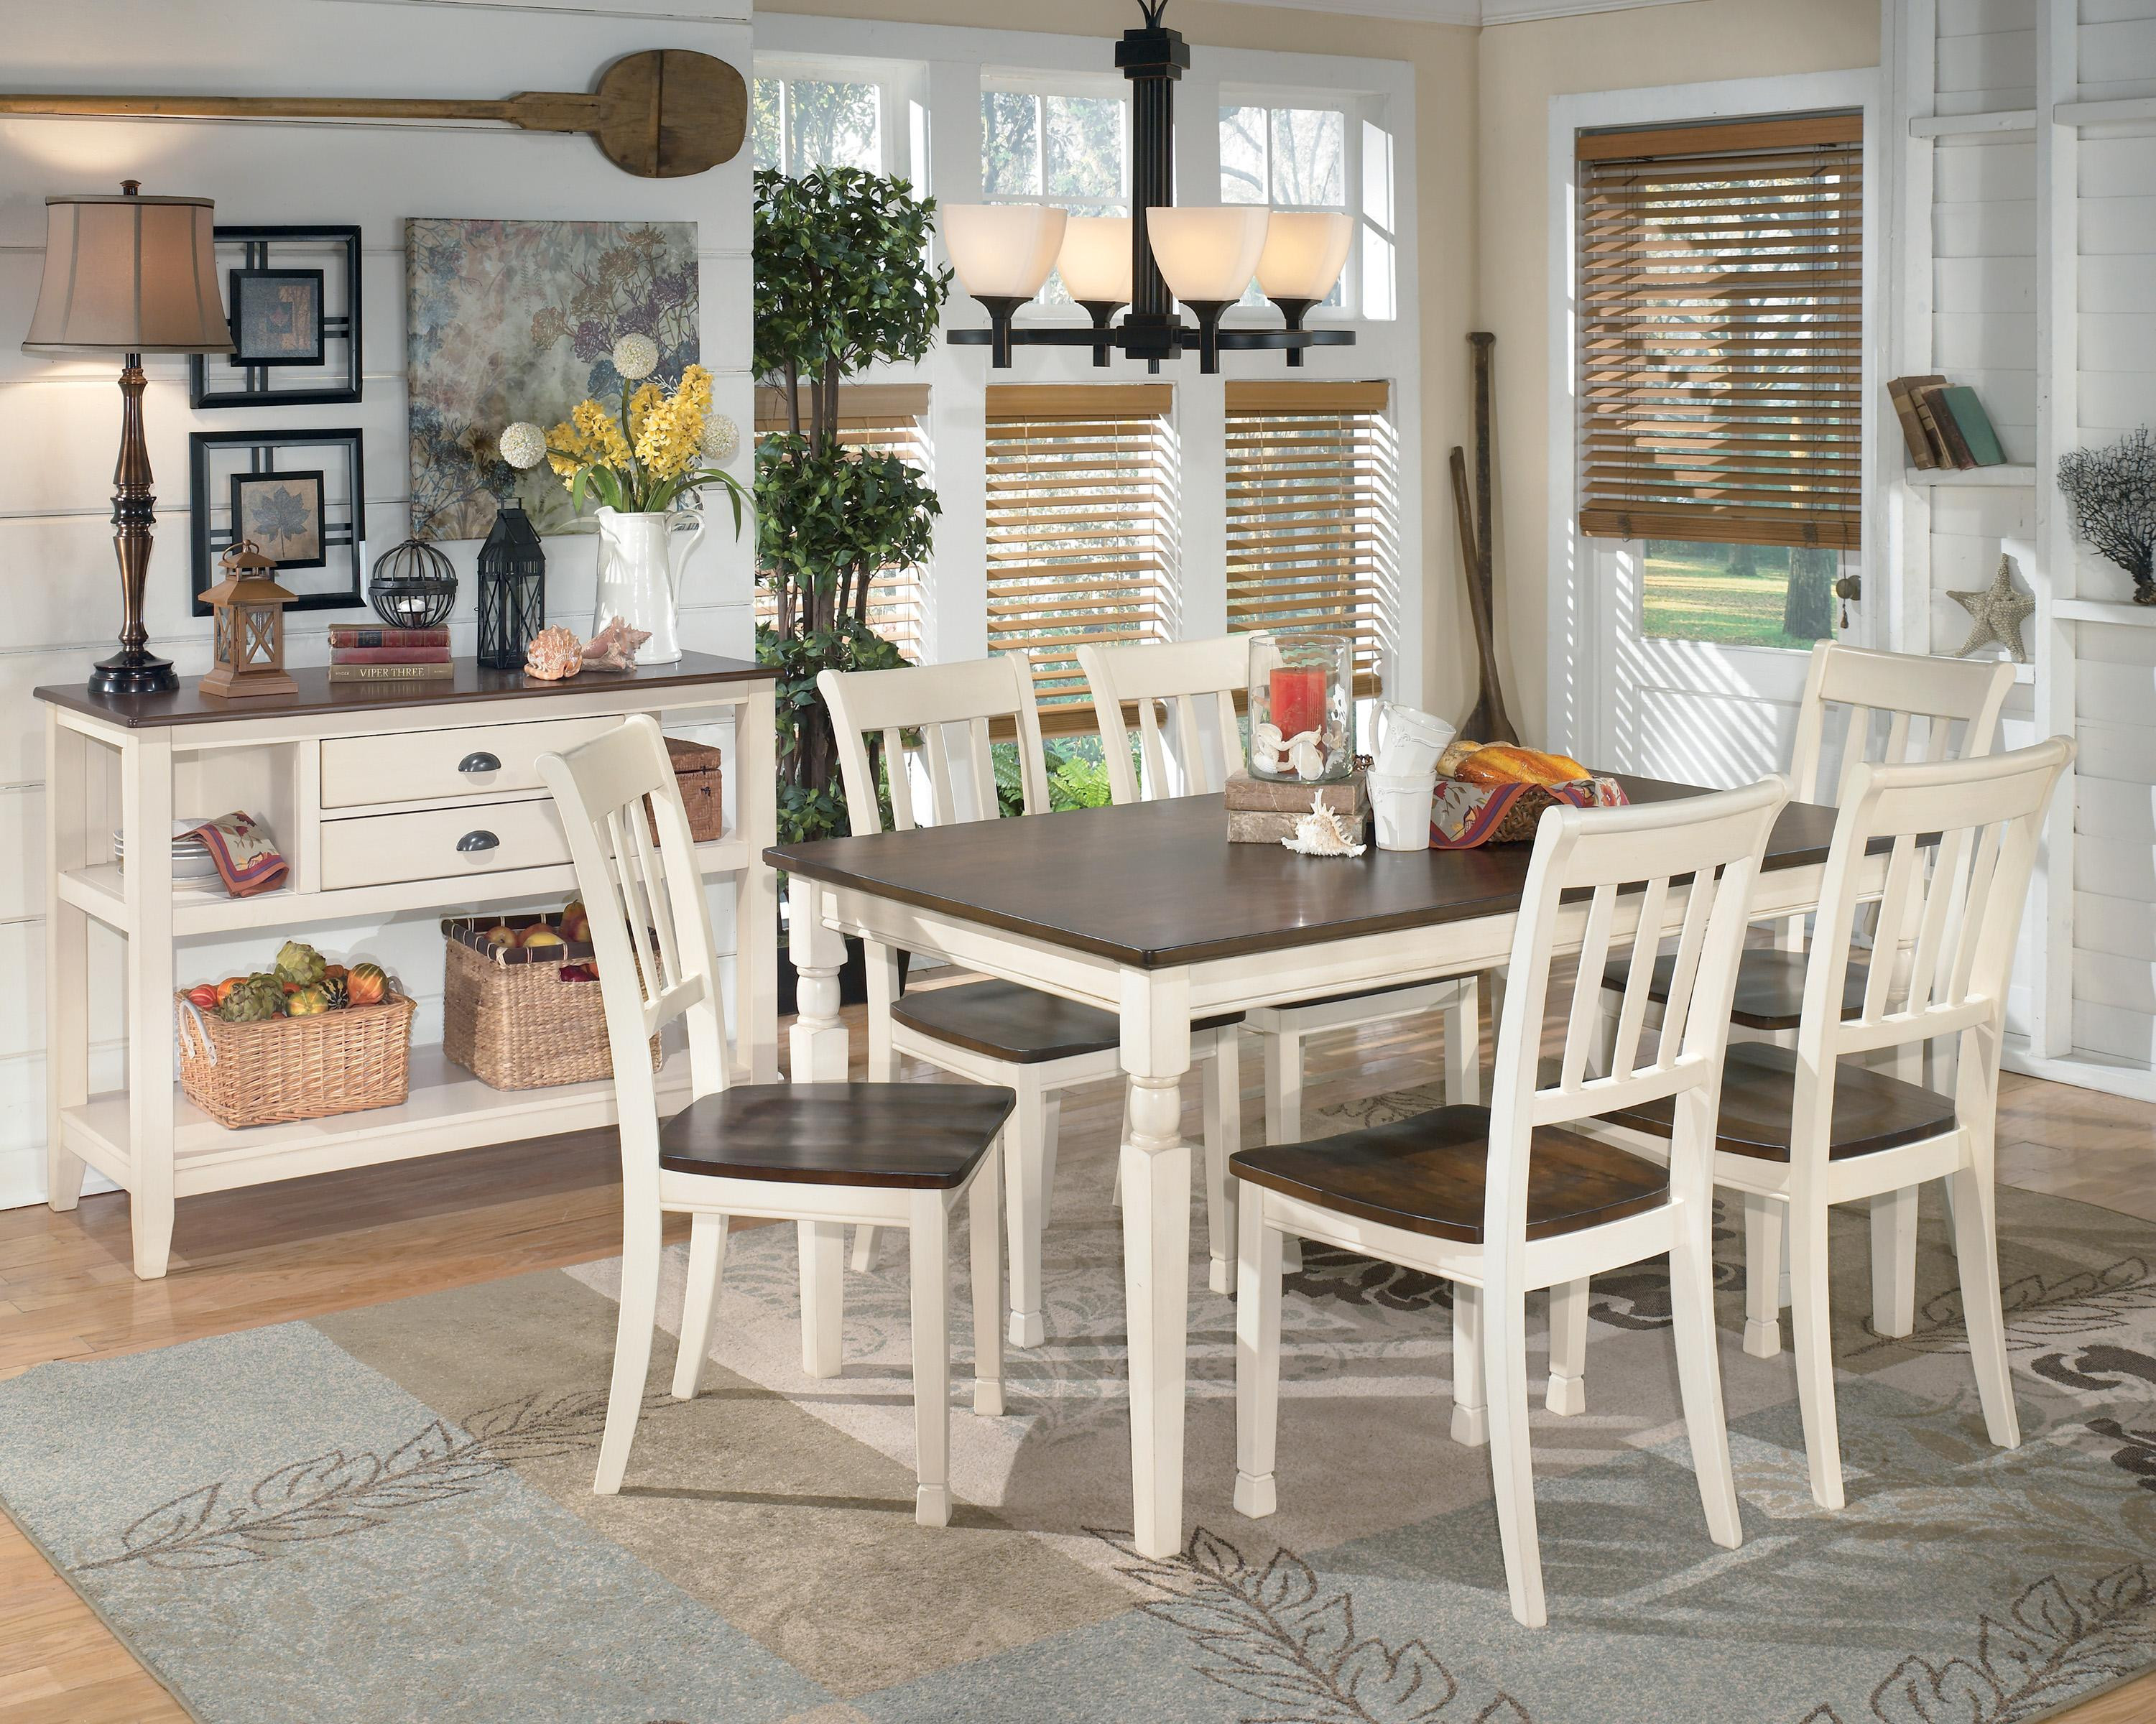 Best ideas about Ashley Furniture Dining Sets . Save or Pin Signature Design by Ashley Whitesburg 7 Piece Rectangular Now.